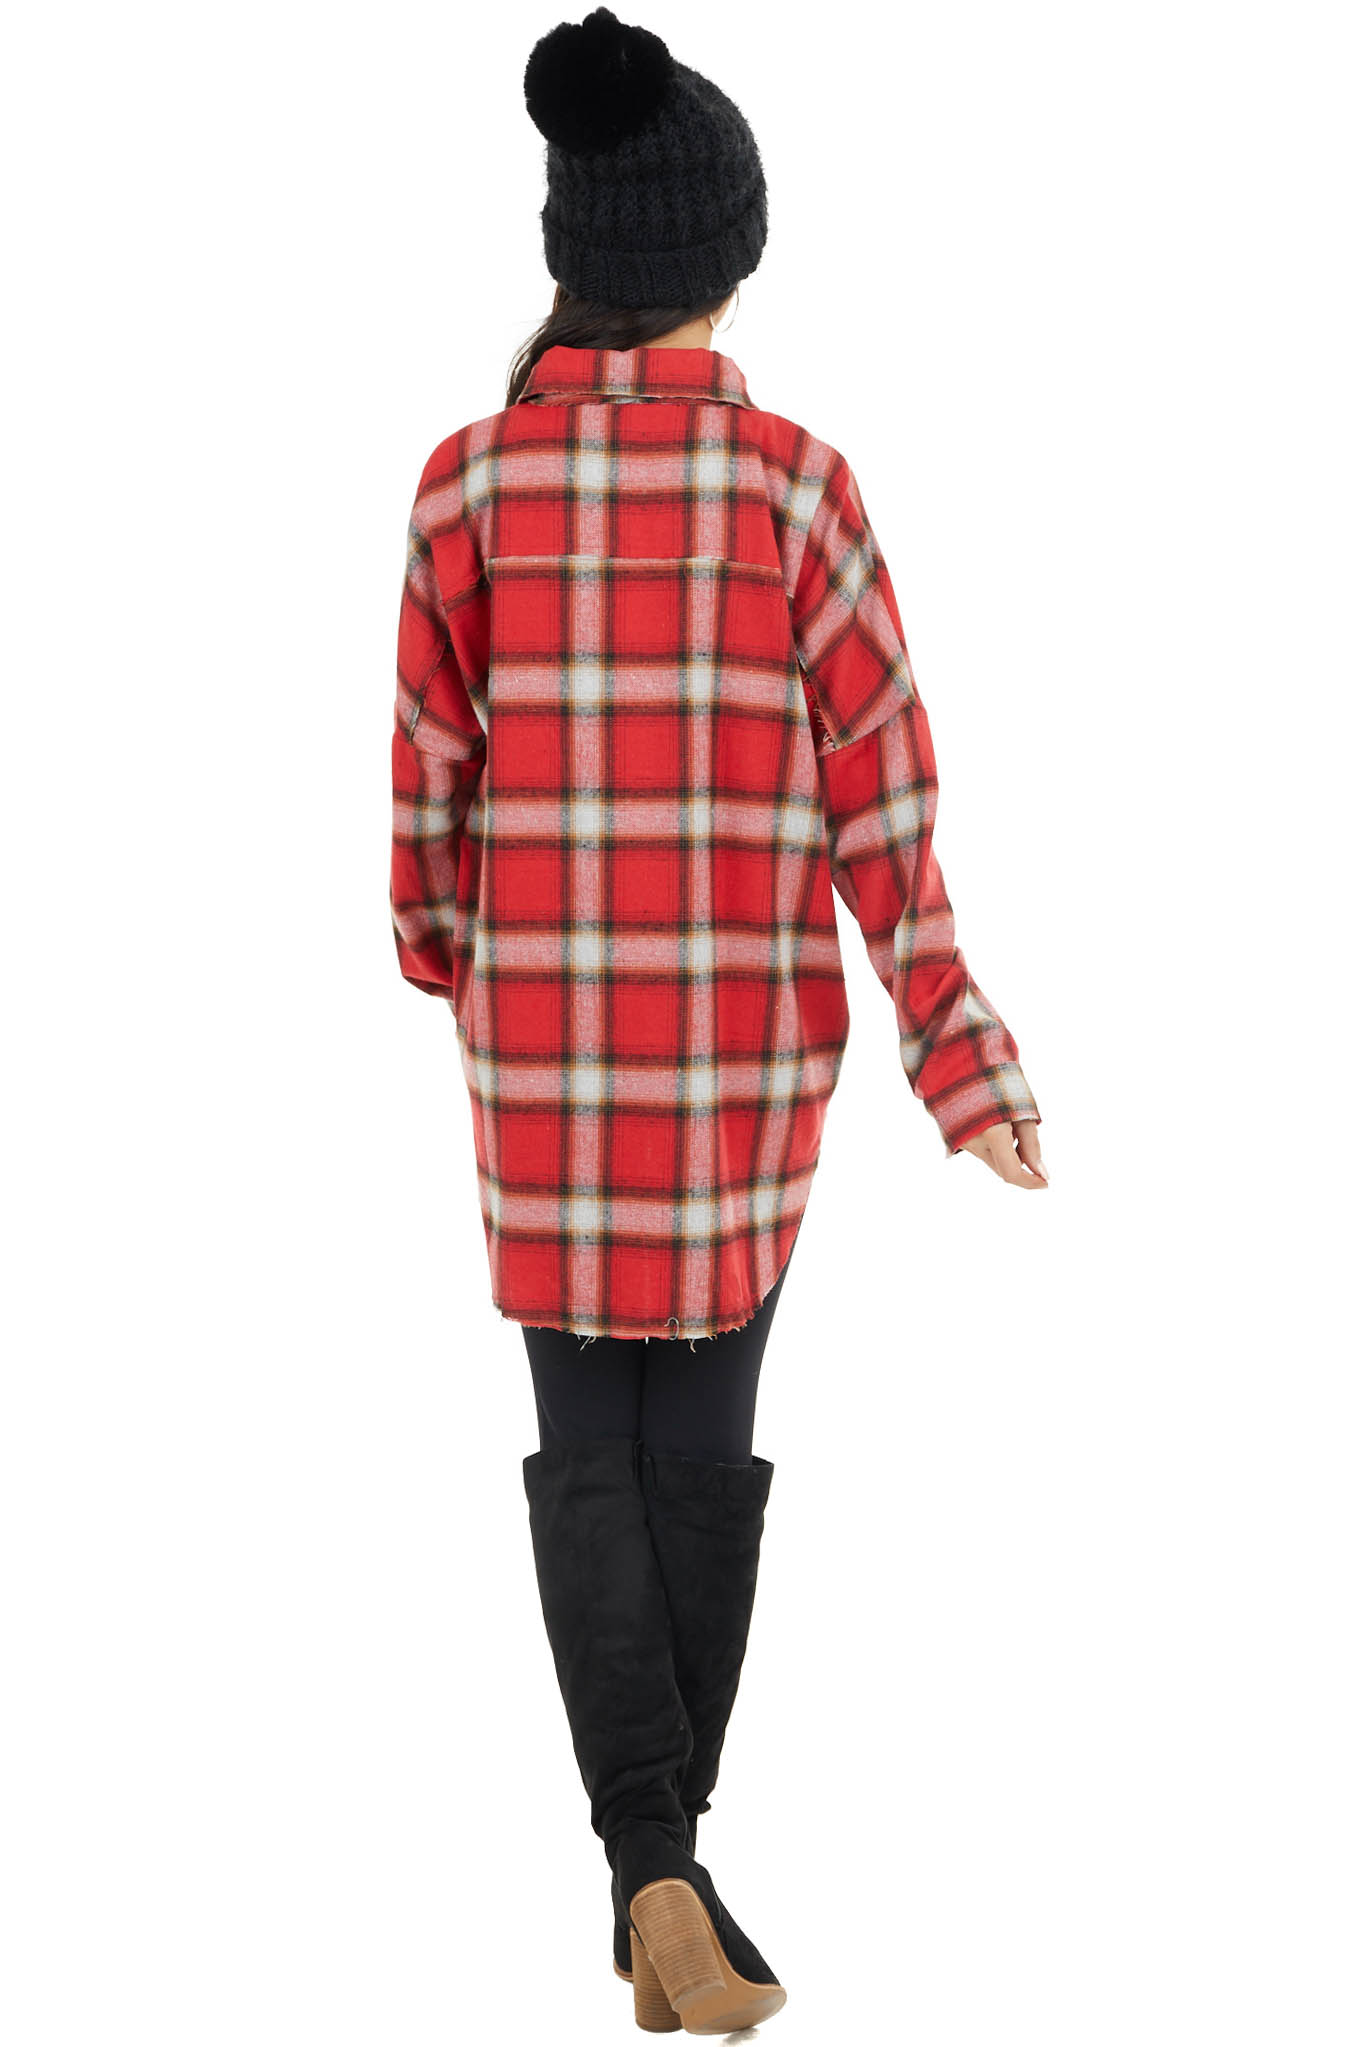 Lipstick Red Flannel Button Up Top with Split Seam Details